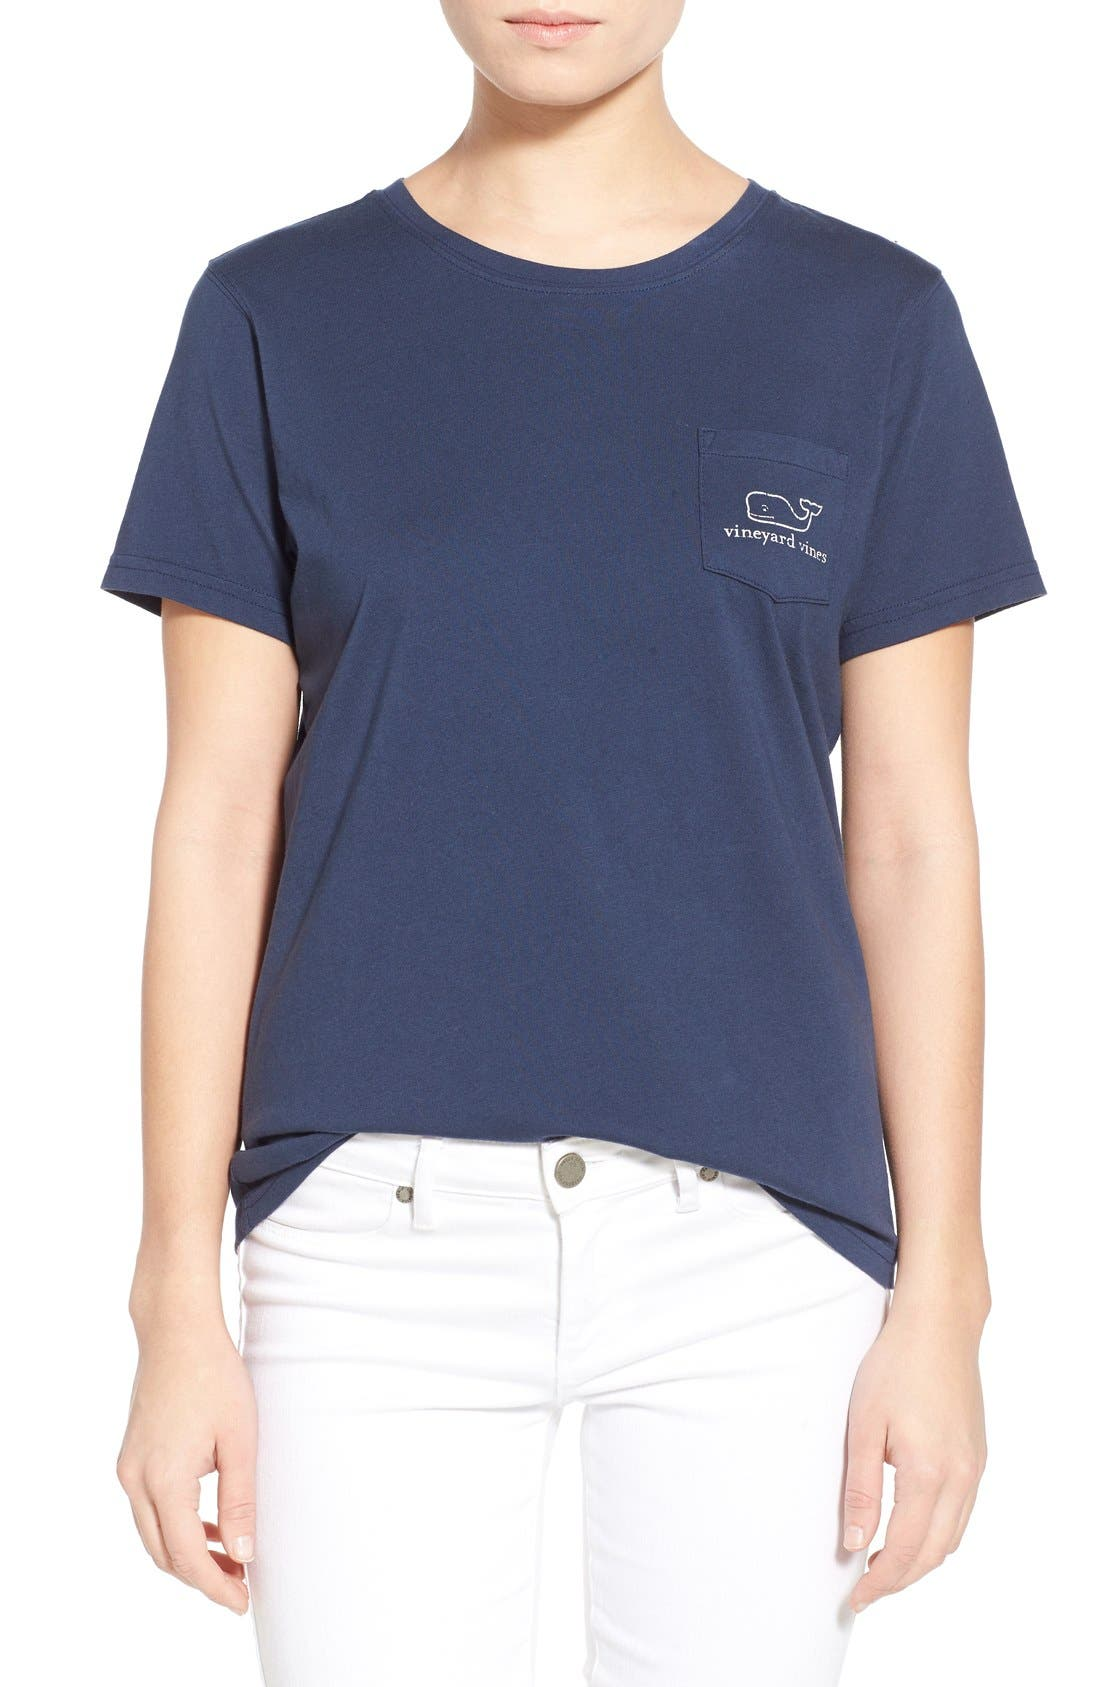 Vineyard Vines Whale Graphic Short Sleeve Pocket Tee